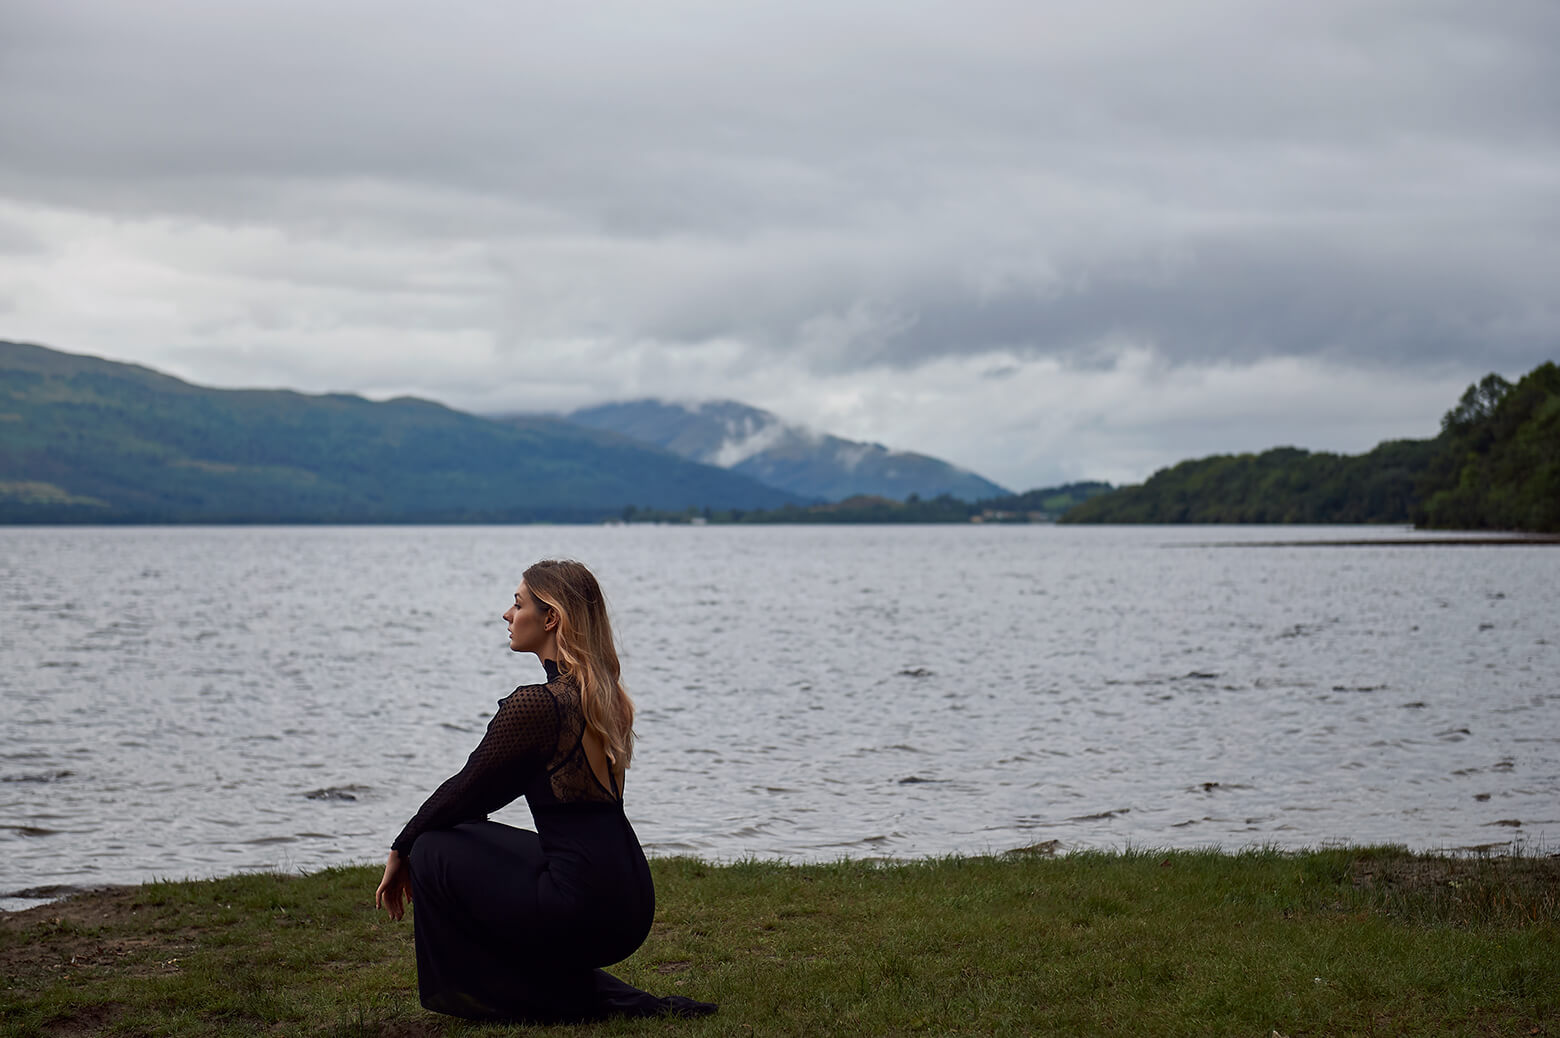 scotland, photography, ursula schmitz, portrait, destination, dream photo shoot, united kingdom, großbritanien, urlaub, travel, fotografie, balloch, loch lomond, portrait, beauty, castle